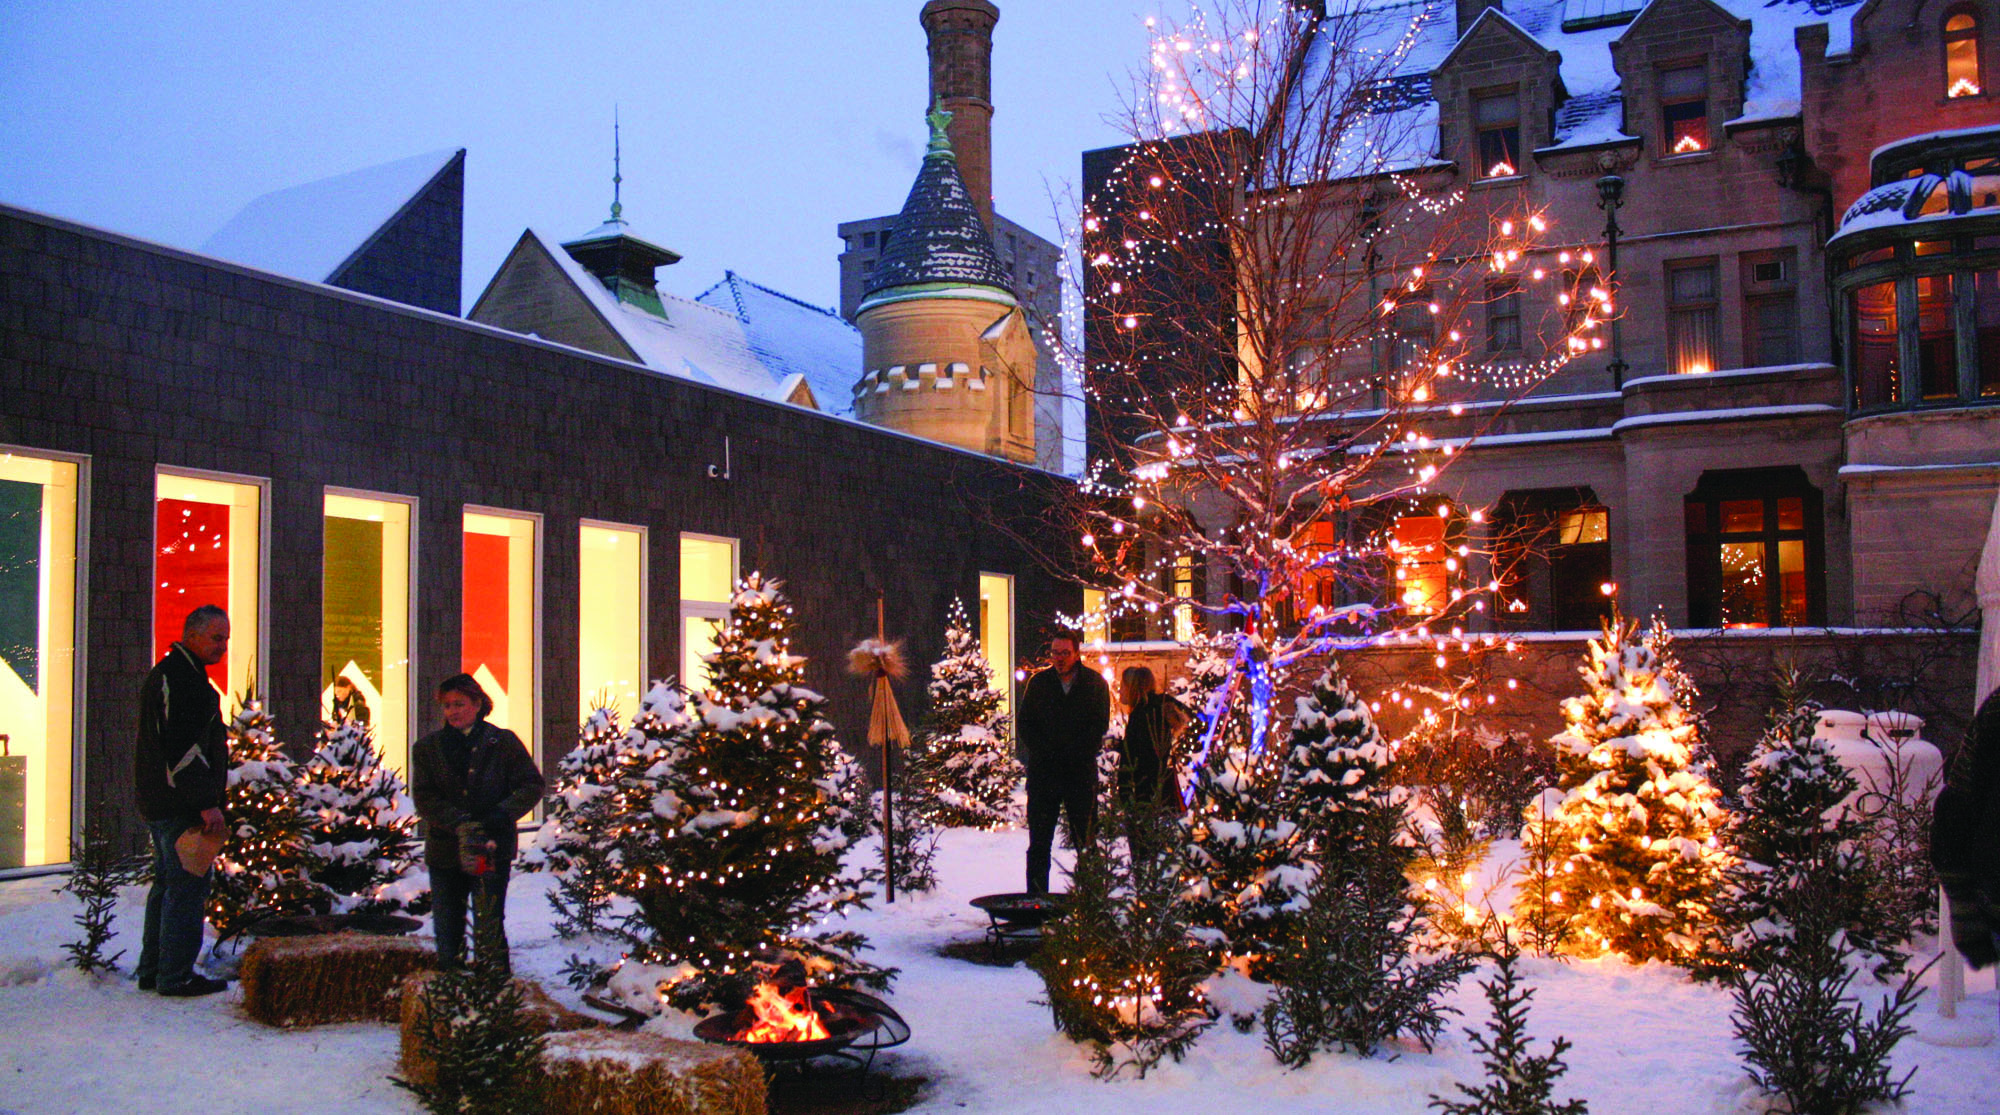 The courtyard at the Turnblad Mansion, lit with holiday lights during Julmarknad, a handcraft fair and holiday festival.